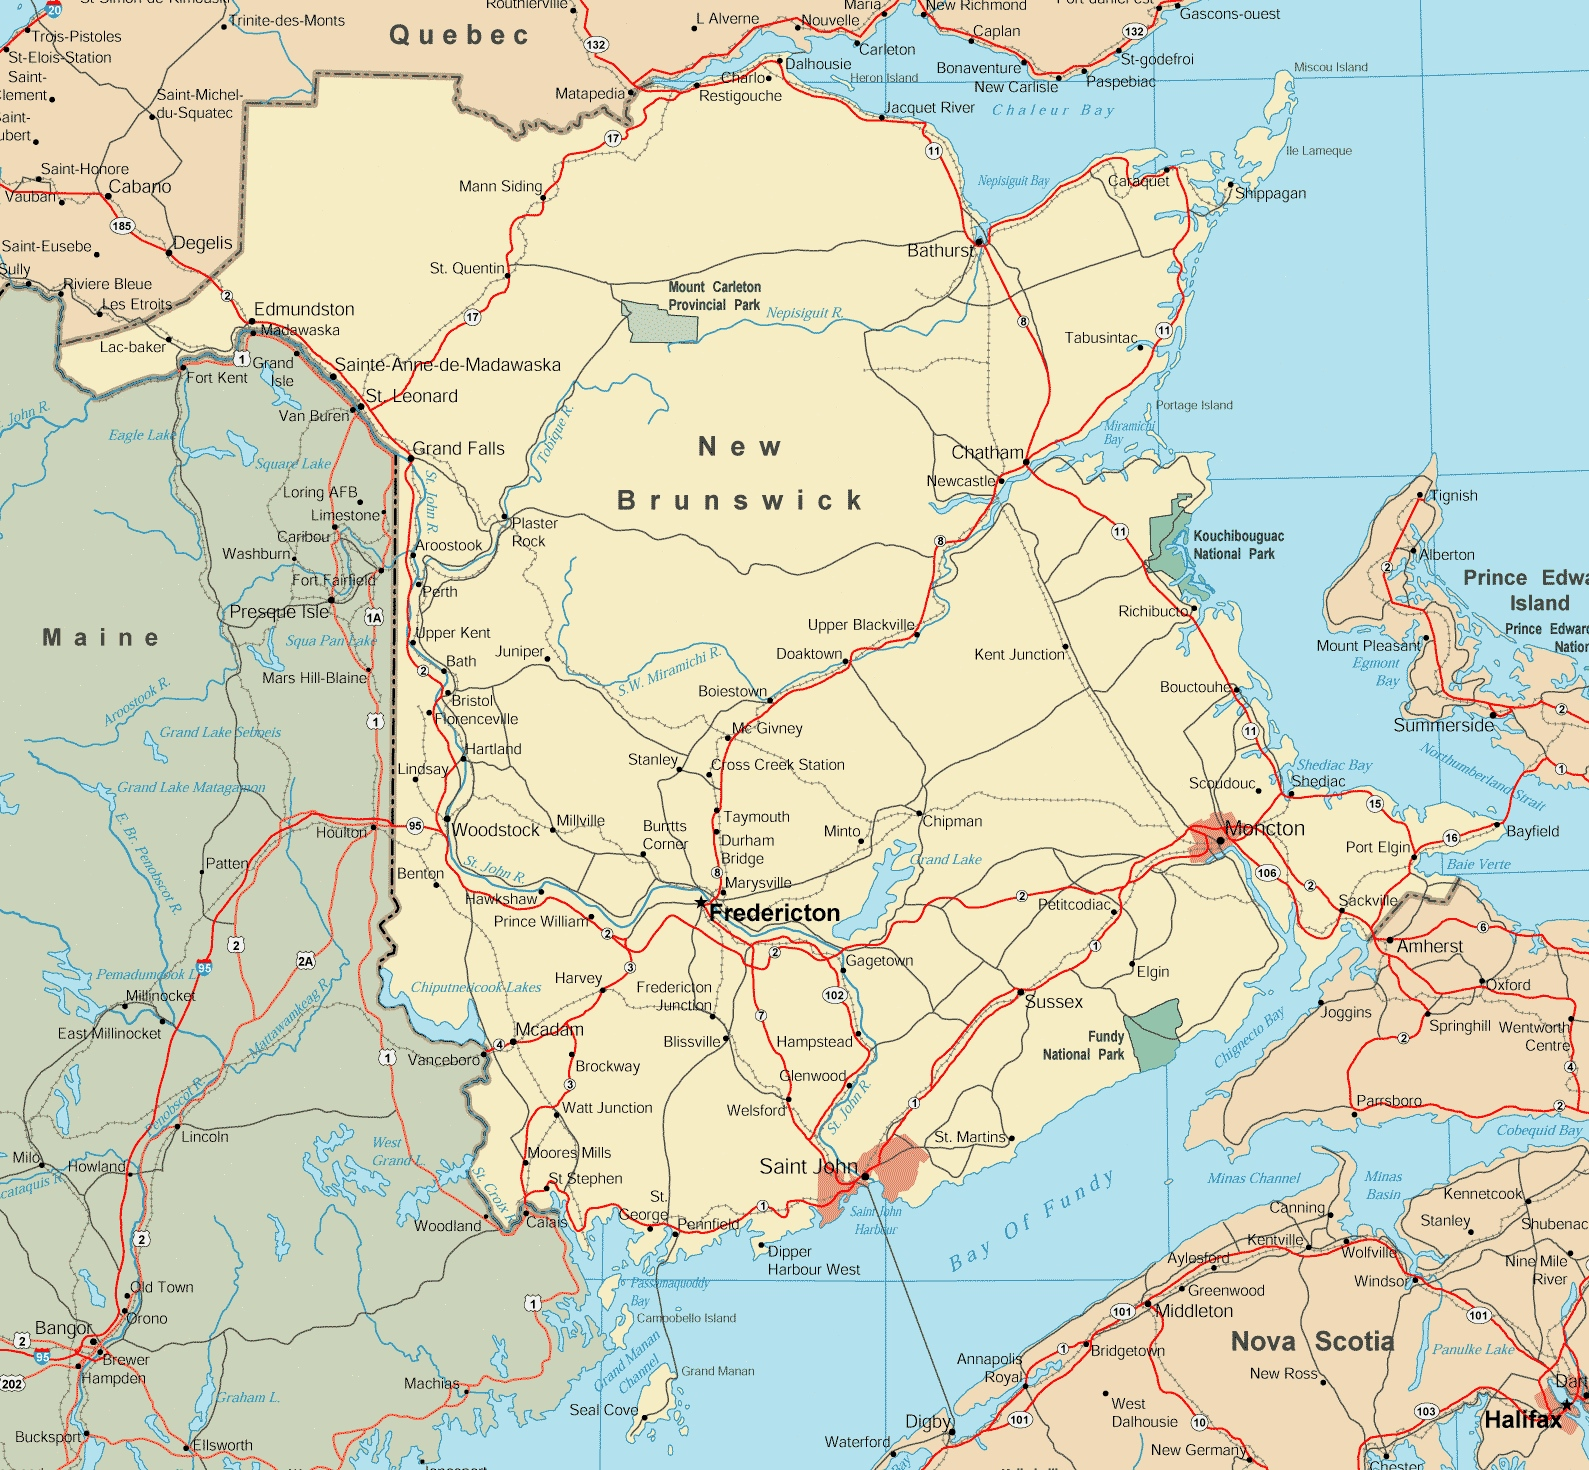 Map Of Canada New Brunswick.Map Of New Brunswick With Cities And Towns